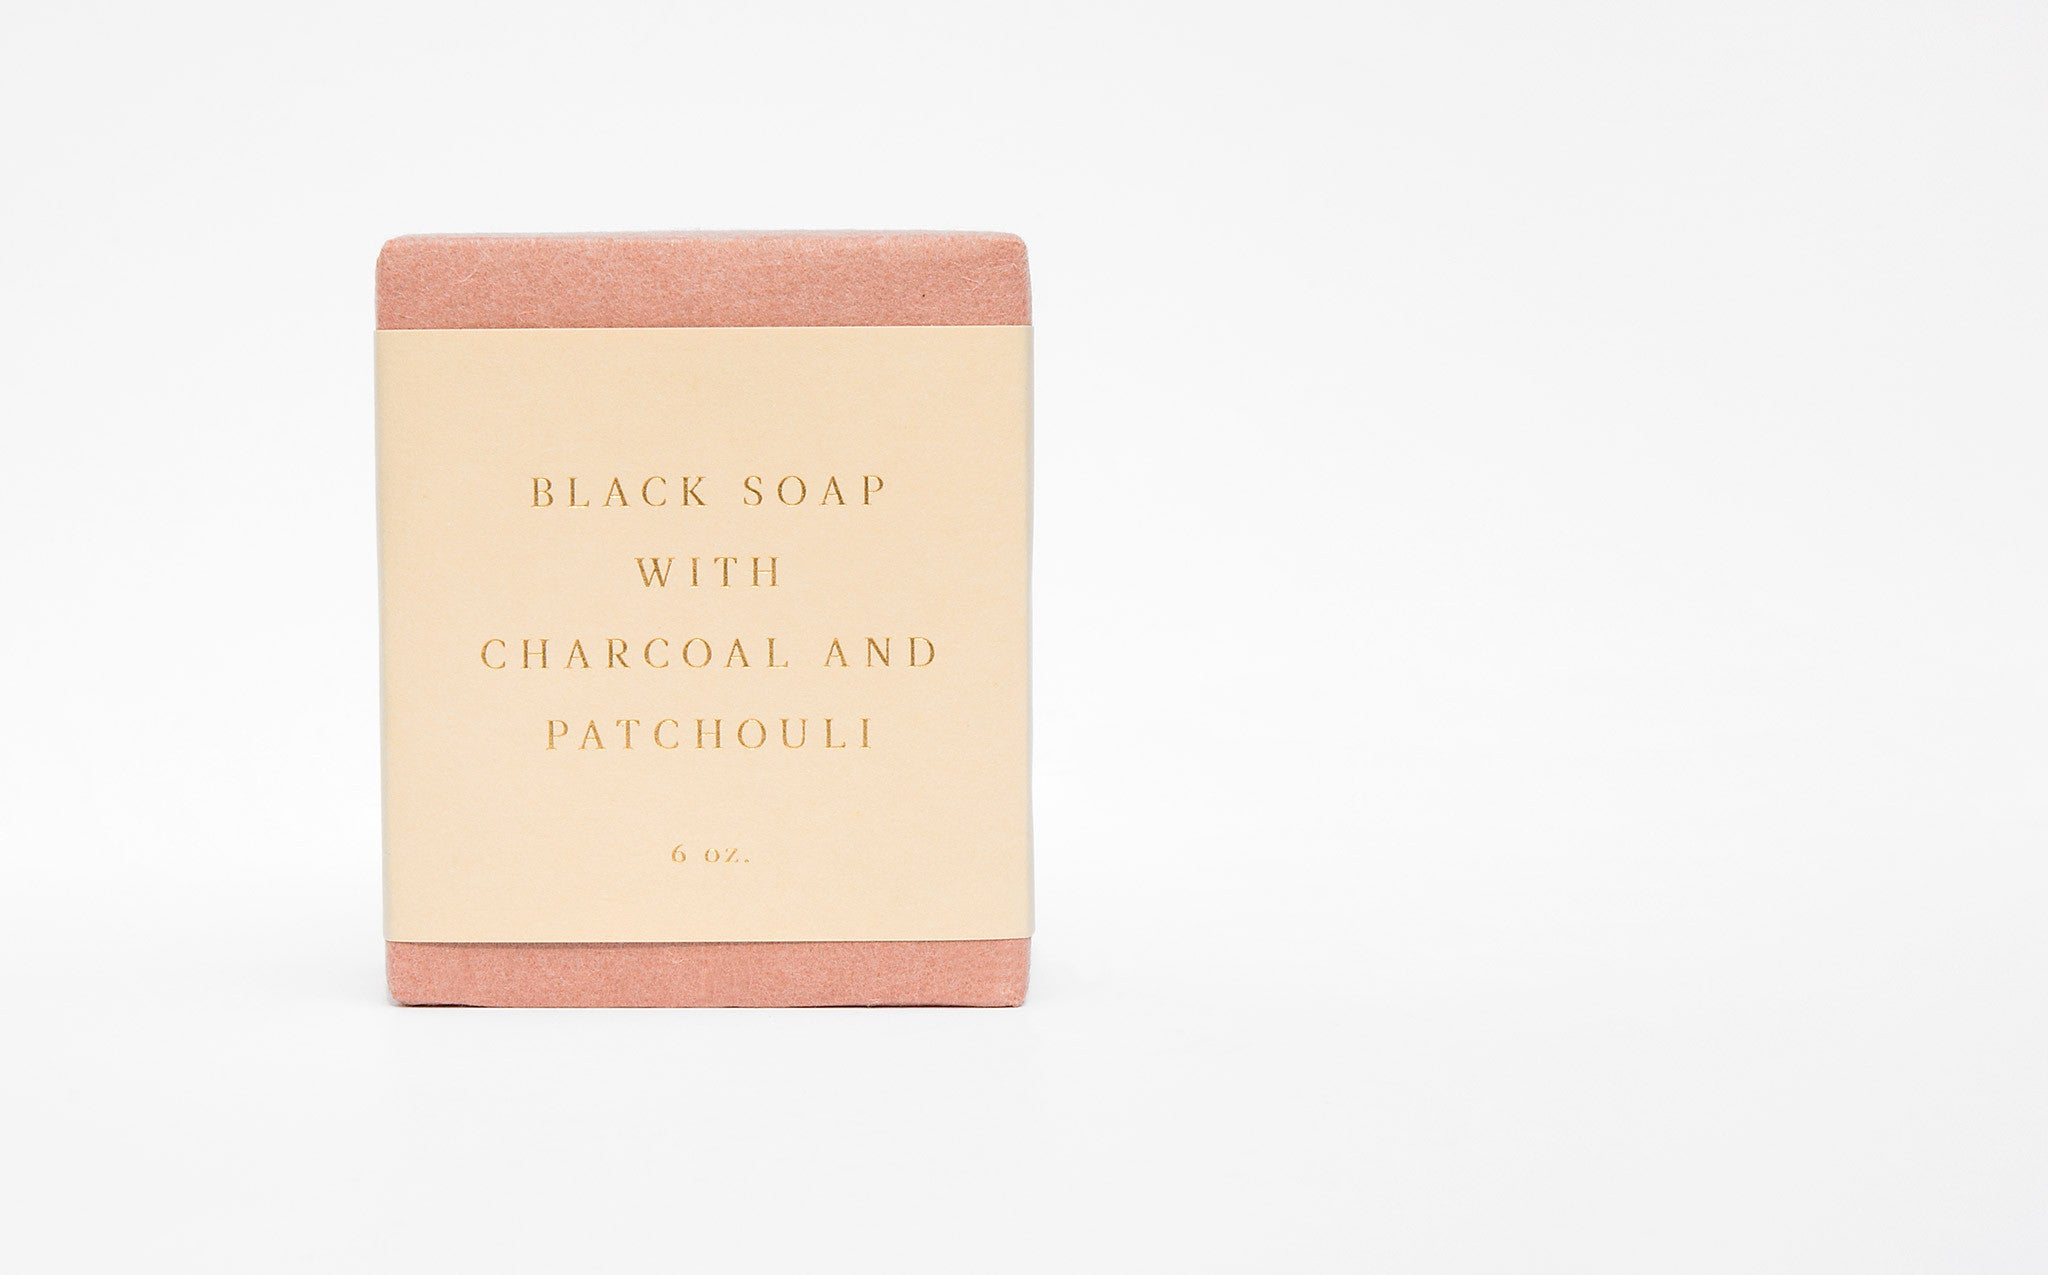 Saipua Black Soap With Charcoal and Patchouli kindred black